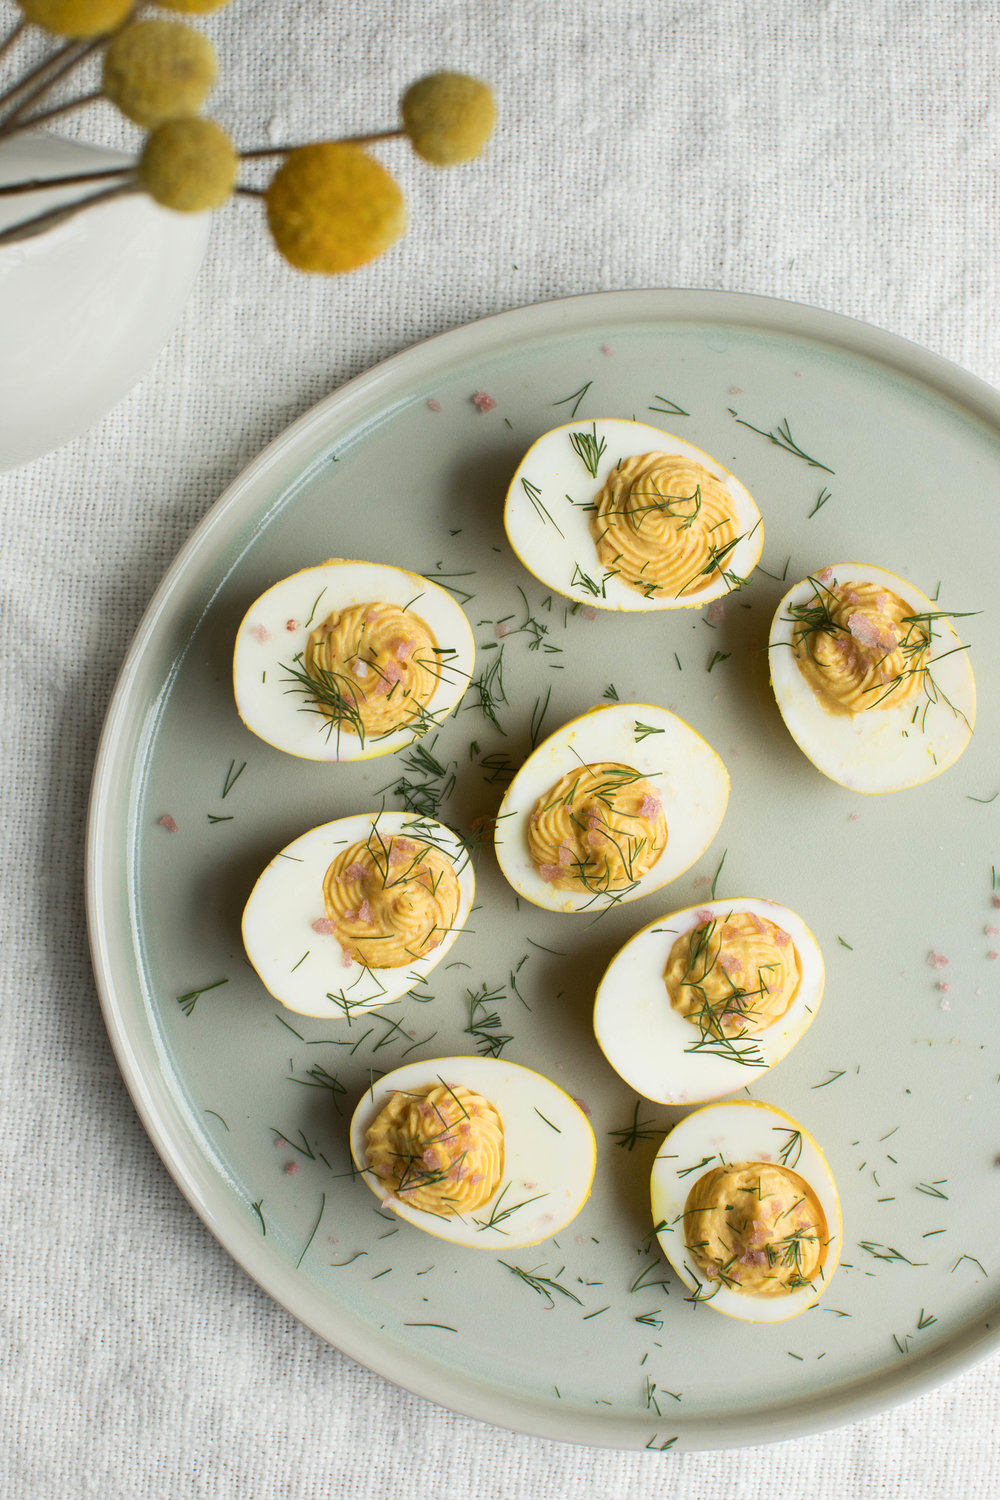 Turmeric pickled deviled eggs.